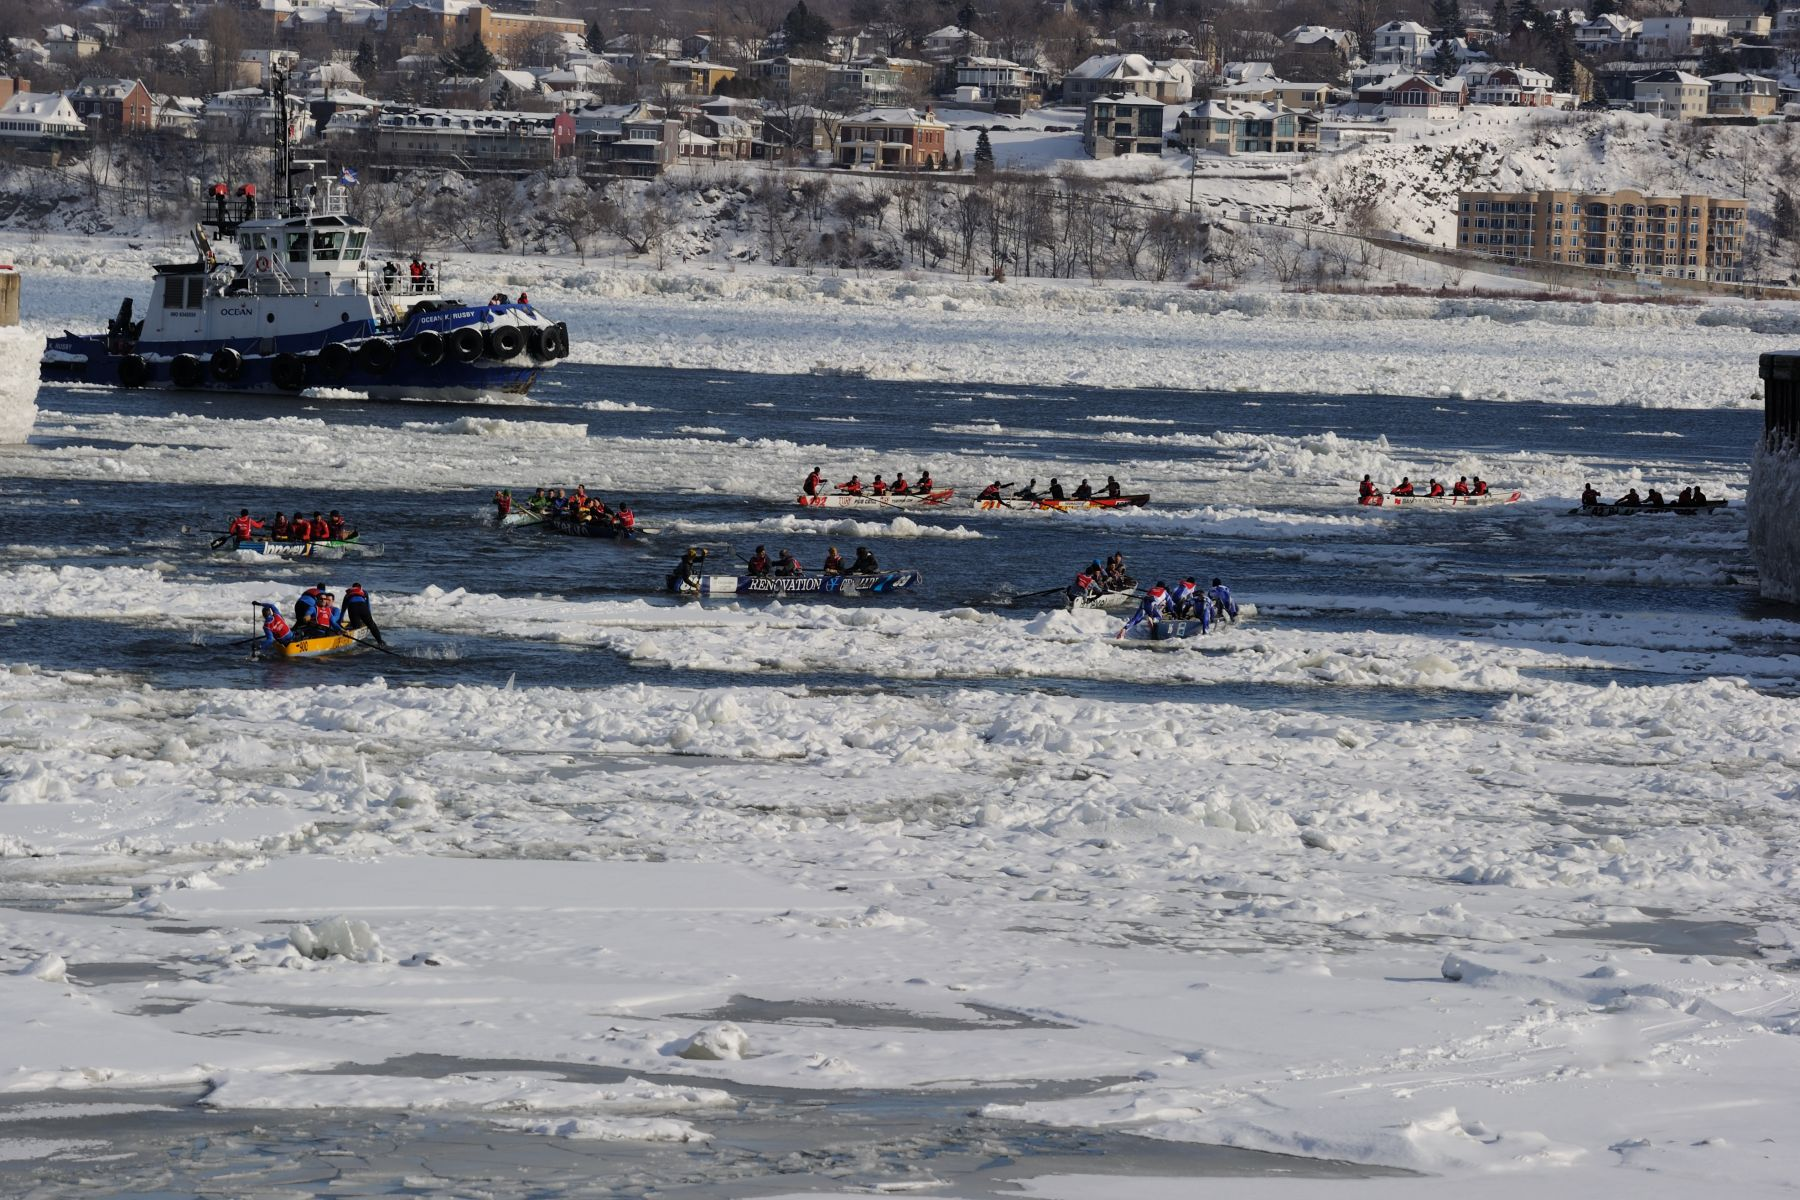 Participants had to cross the frozen waters of the St. Lawrence river twice.